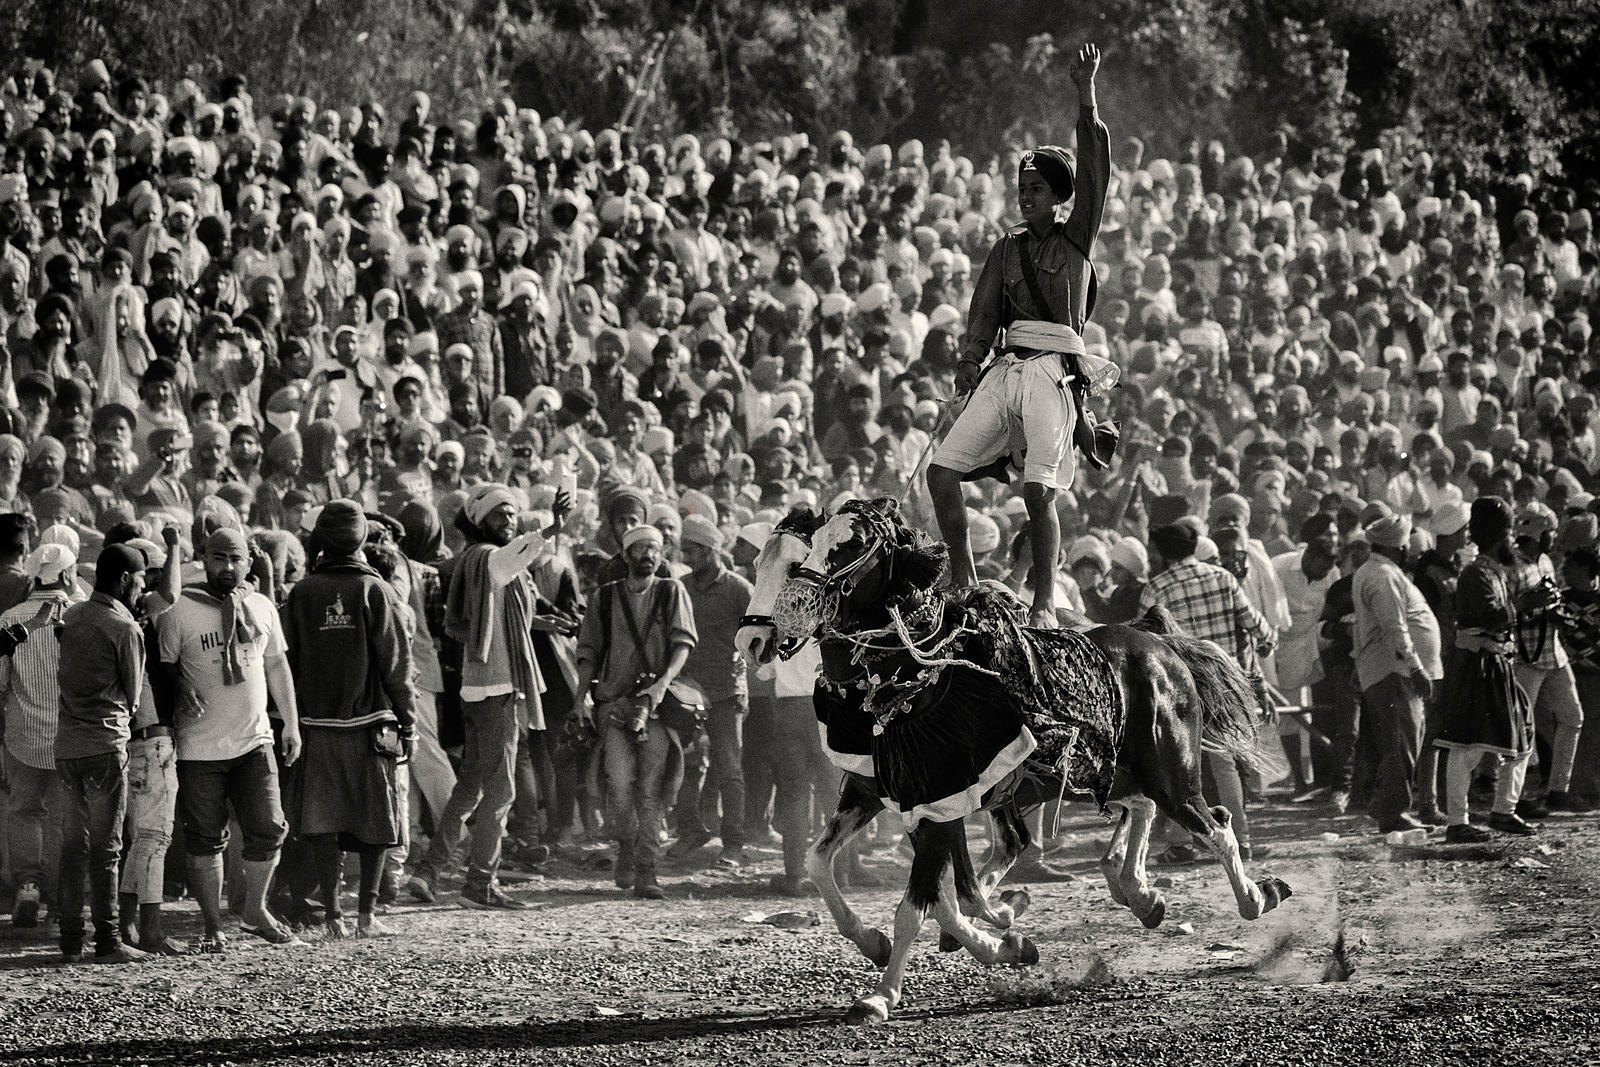 A Nihang Sikh Shows of his Riding Skills at the Holla Mohalla Horse Games